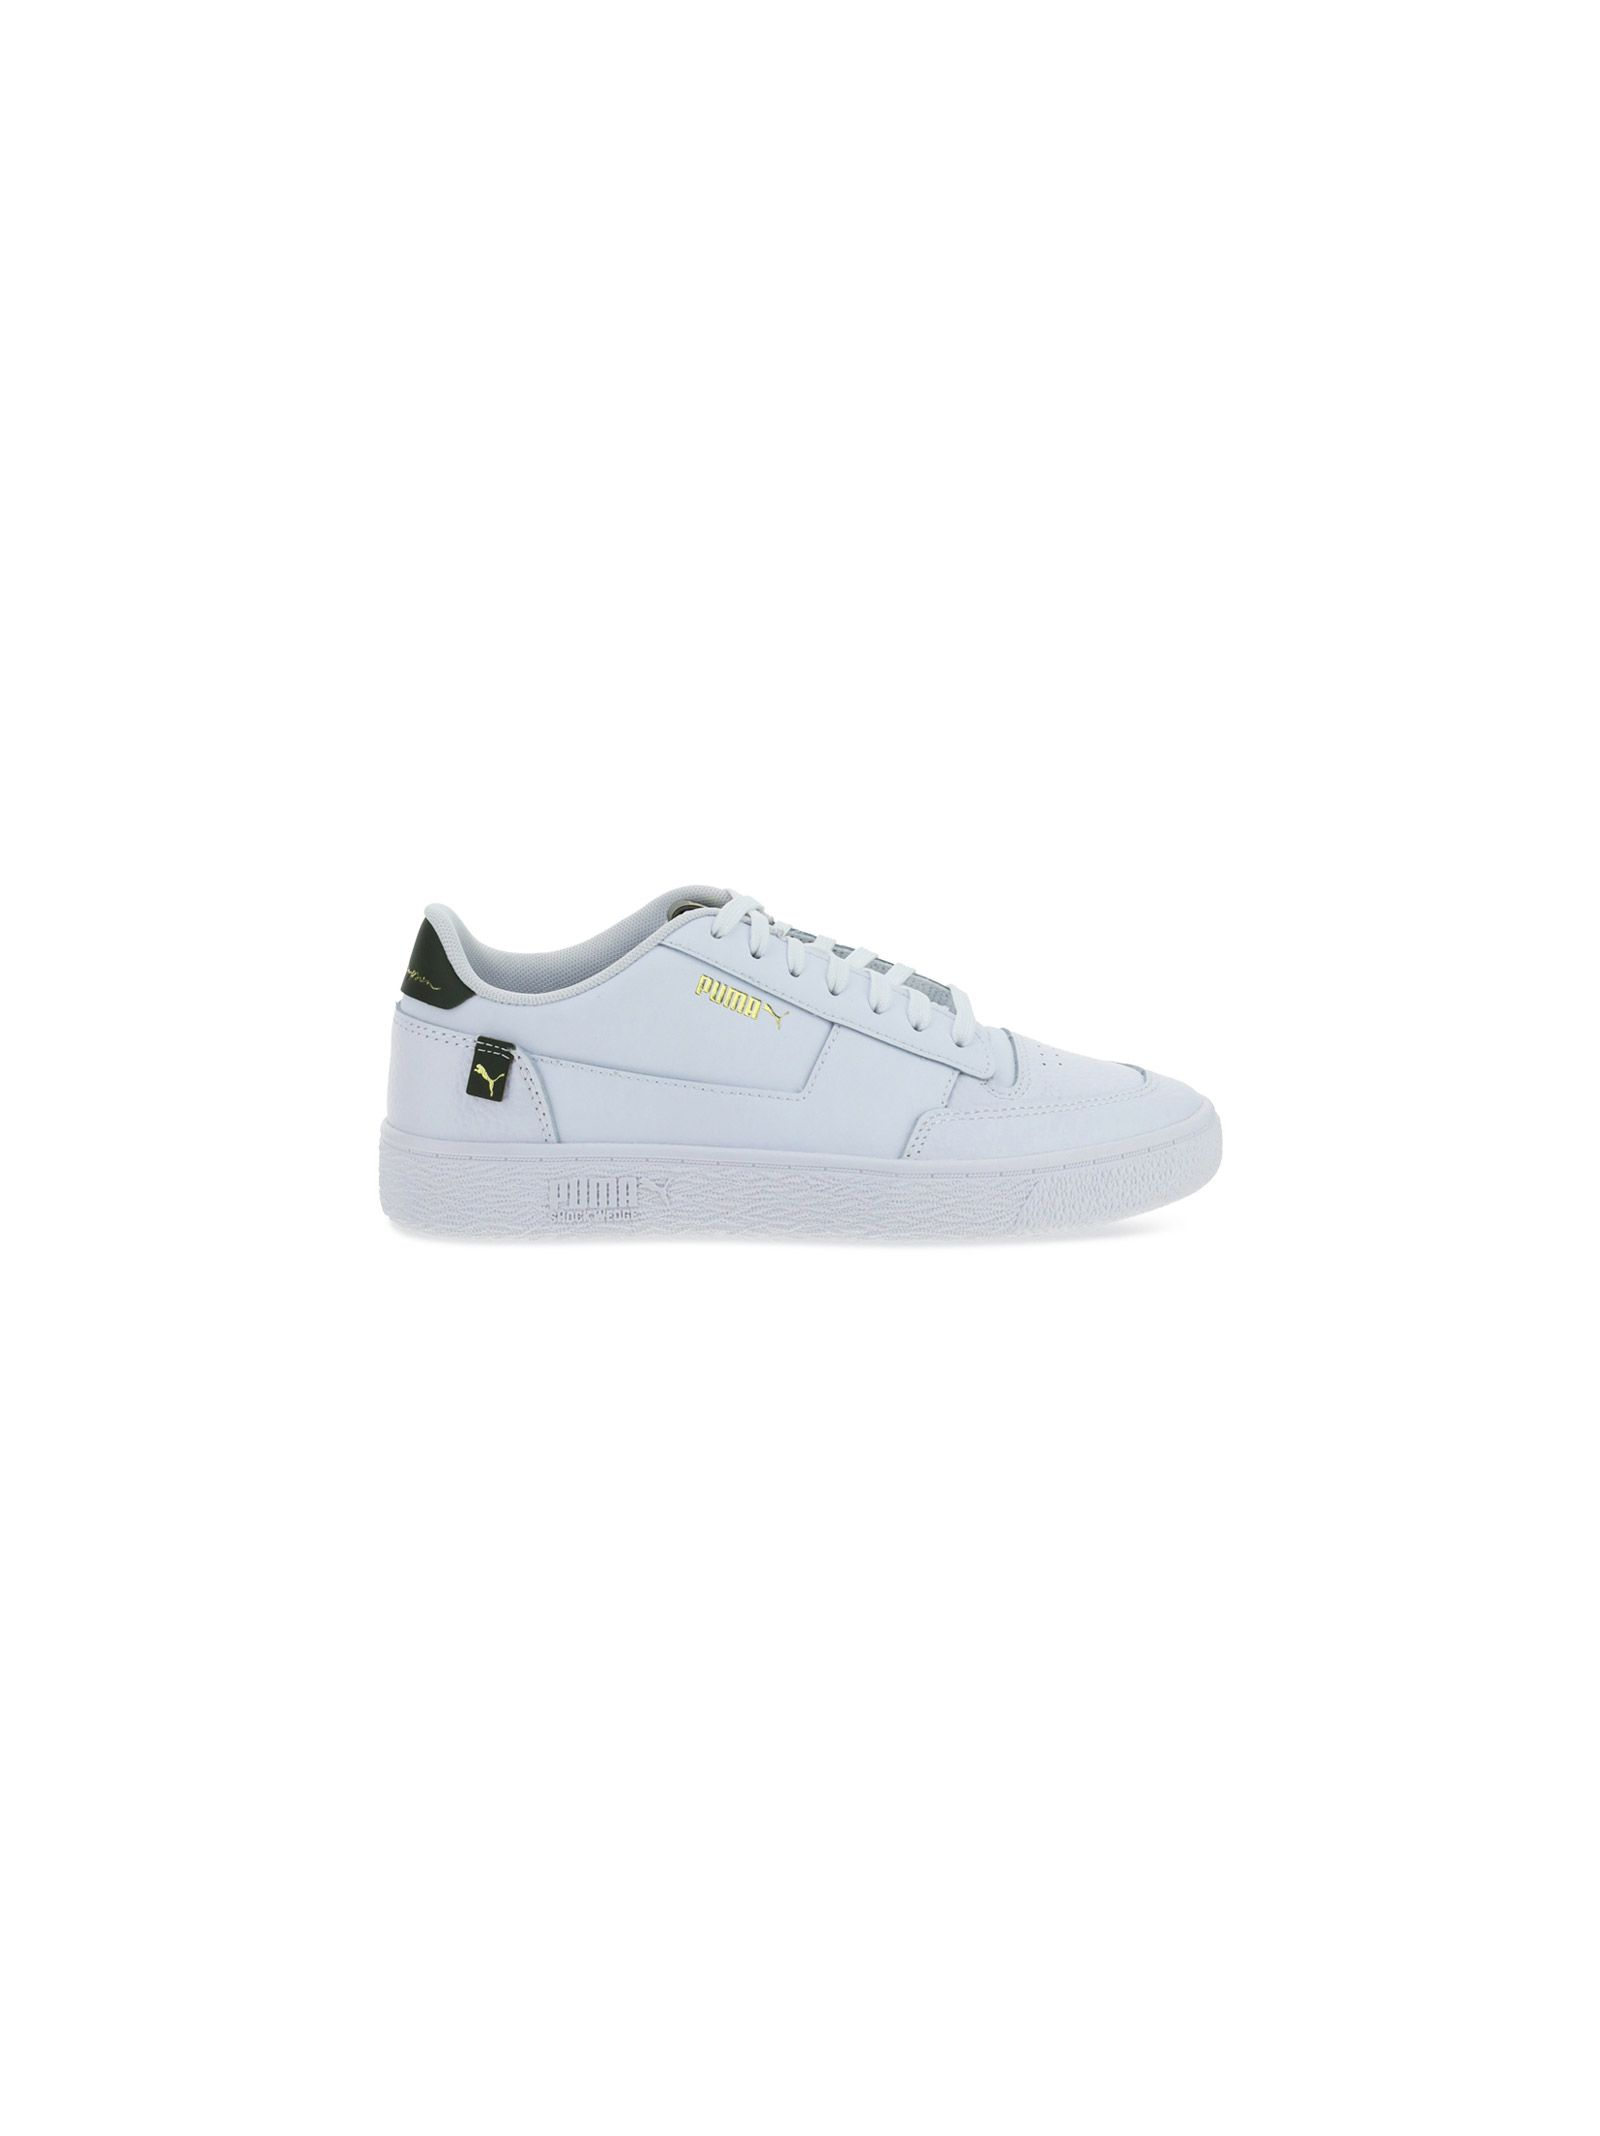 Puma PUMA MEN'S 37591001PUMAWHITEF WHITE OTHER MATERIALS SNEAKERS